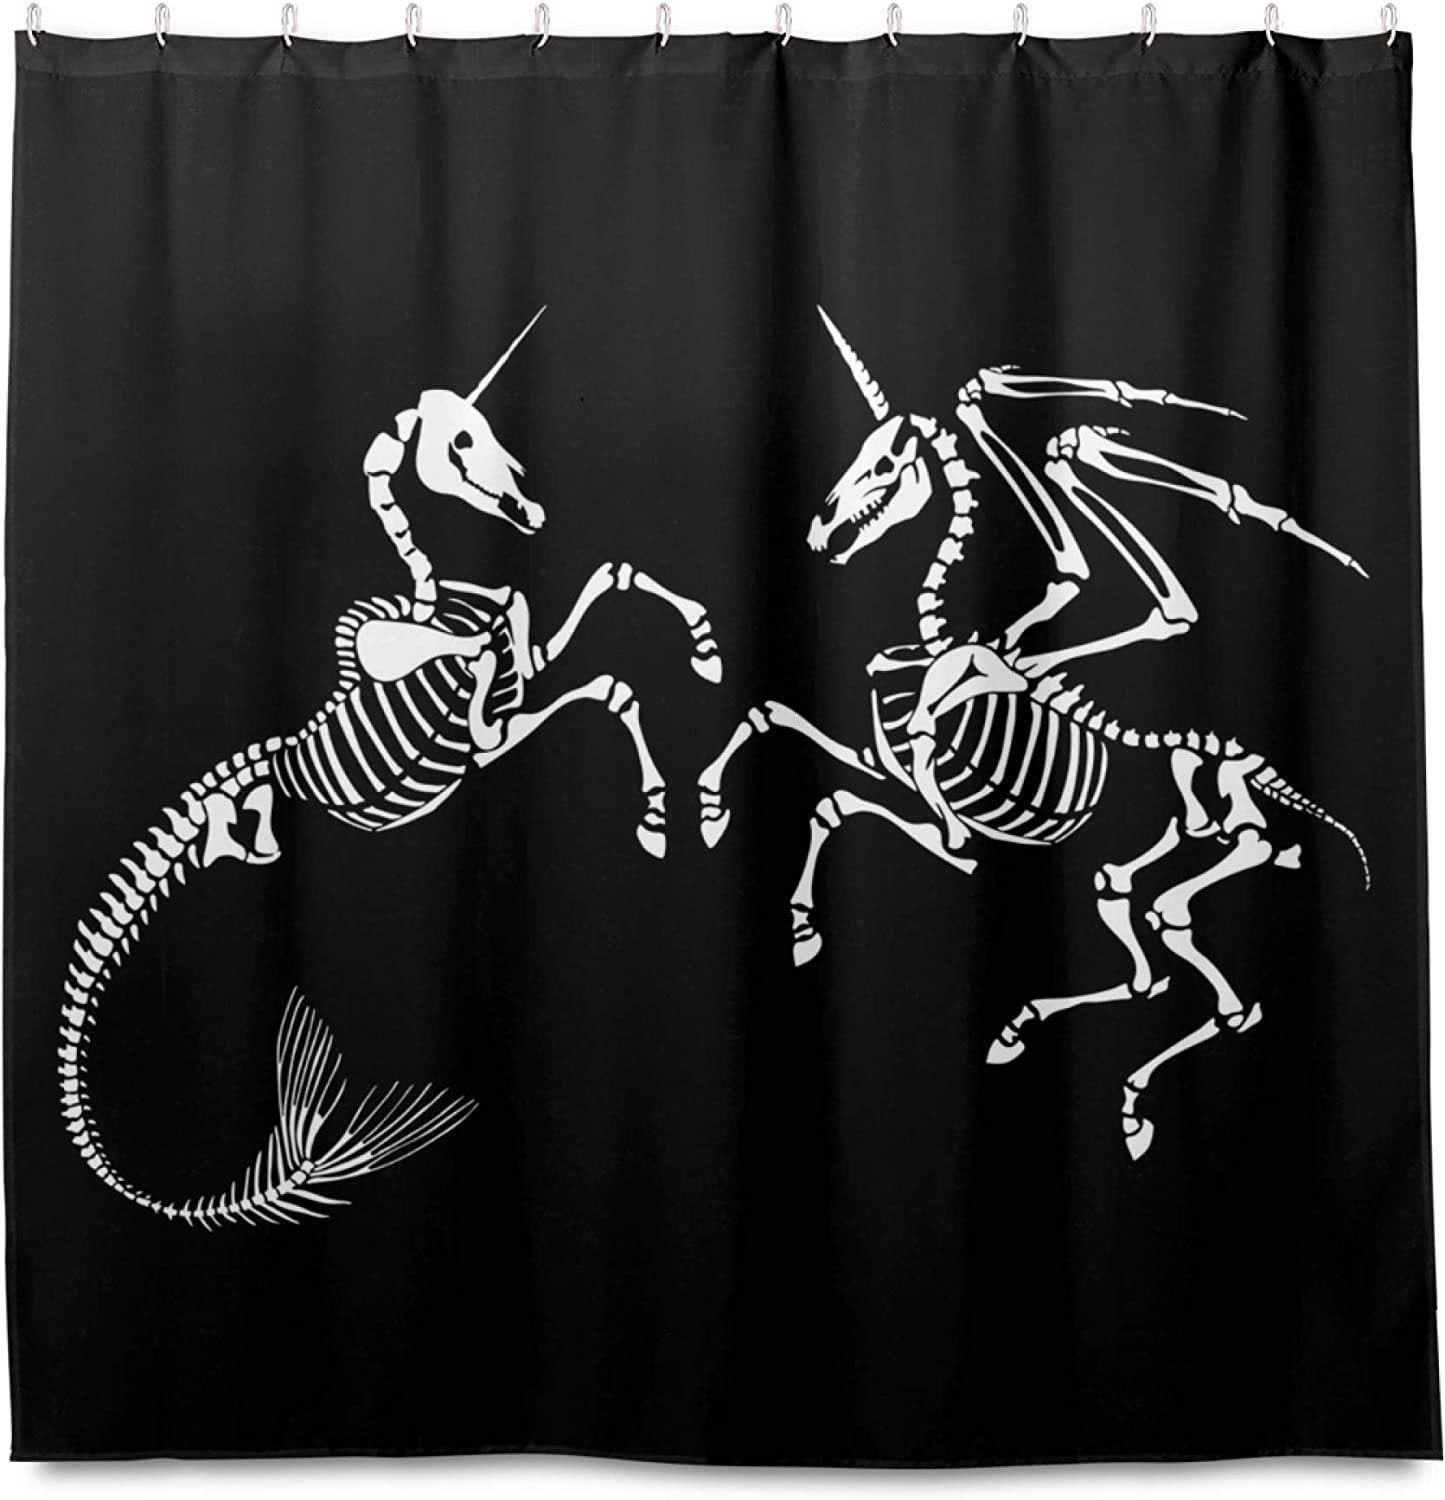 Blue Viper Skeleton Unicorn with Mermaid Home Decorations Shower Curtain 72 x 72 inch Waterproof Polyester for Bathroom Shower Curtain Set with Hooks